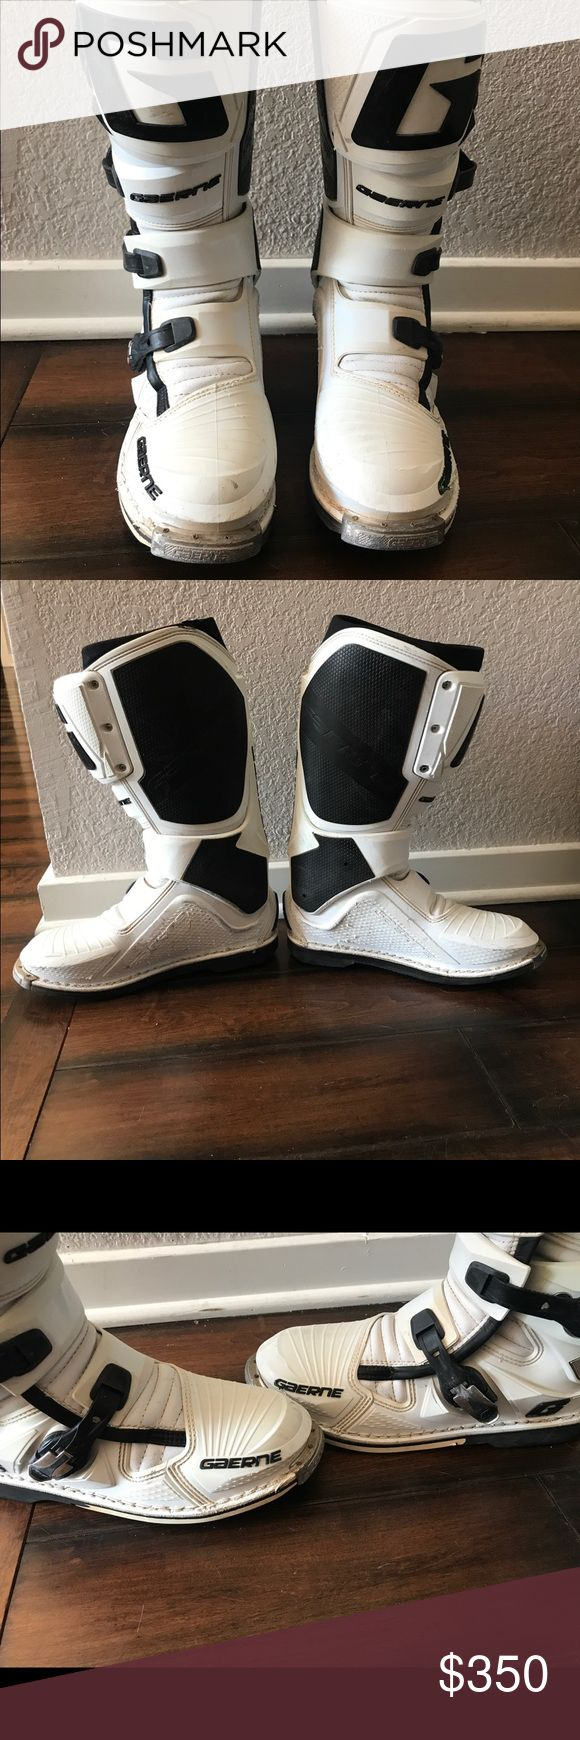 Gaerne SG12 Motocross Boots Size 11 Men's motocross boots size 11. Used hand full of times. No major damages, all buckles are functional, only surface scratches. In great condition.                                                         ❤️❤️❤️❤️❤️❤️❤️❤️❤️❤️❤️❤️❤️❤️❤️❤️❤️❤️❤️❤️ motocross Boots, dirt bike boots, motorcycle boots, racing boots Gaerne Shoes Boots